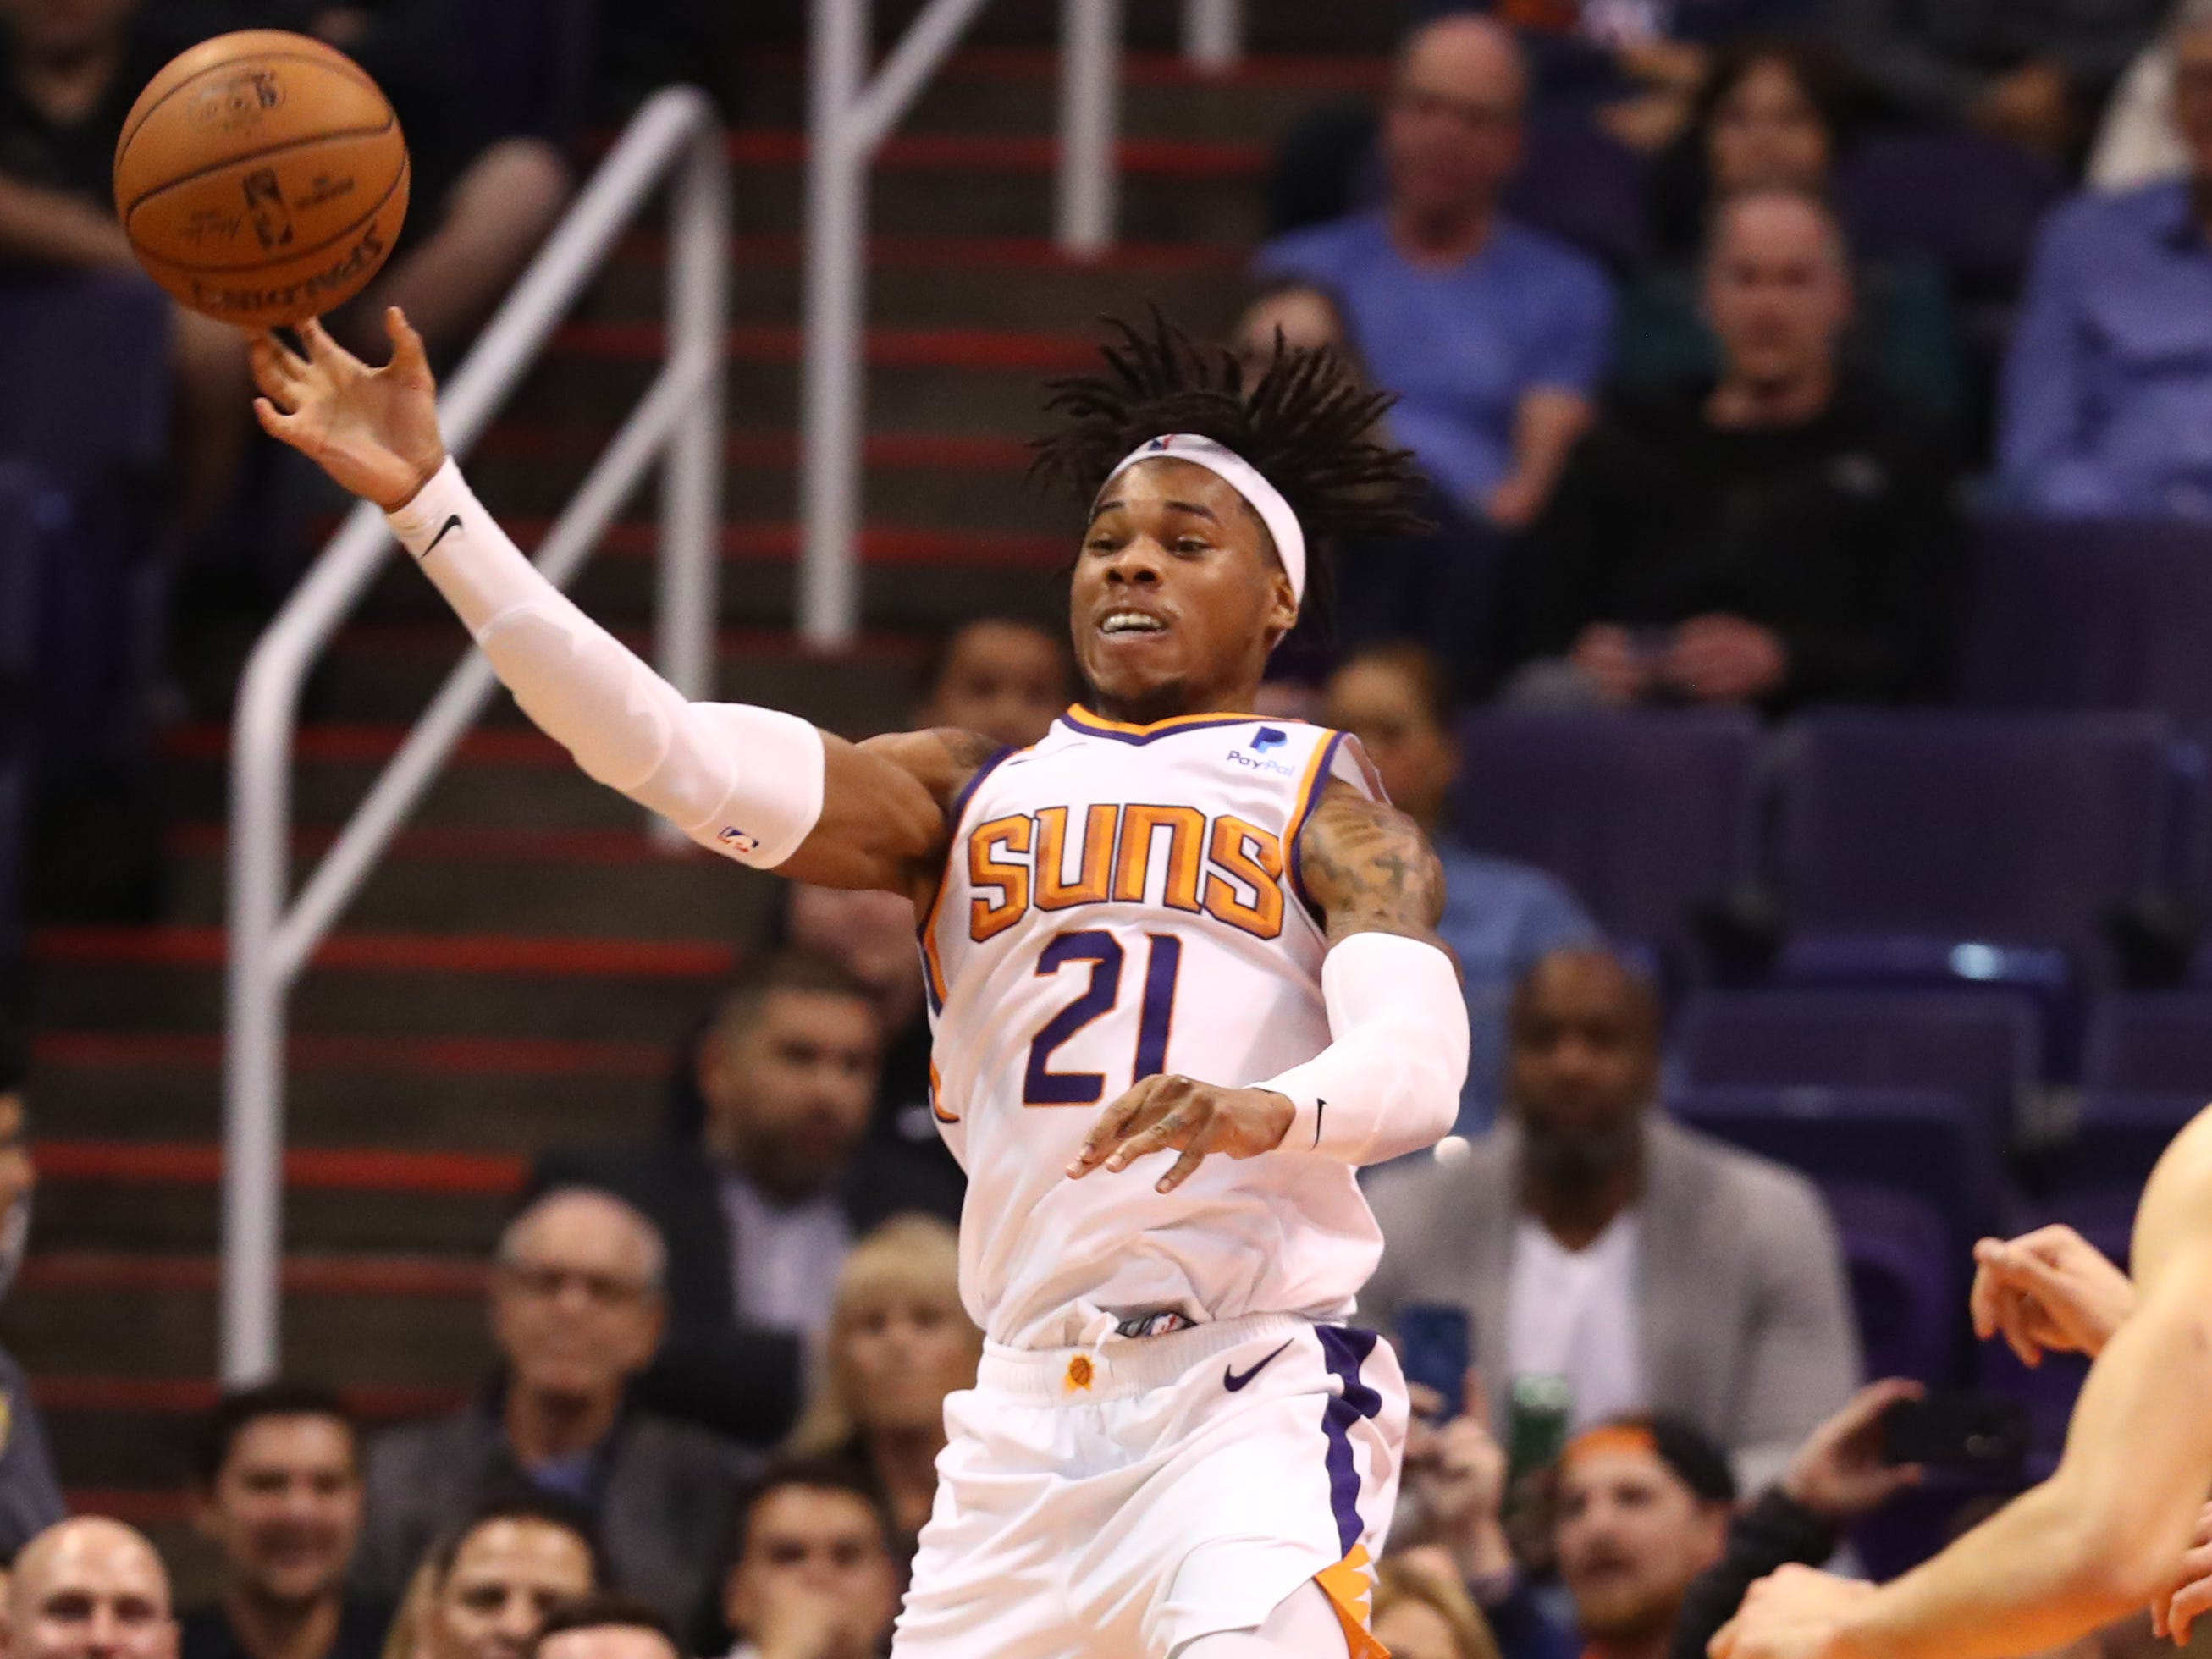 Dec 4, 2018; Phoenix, AZ, USA; Phoenix Suns forward Richaun Holmes (21) passes the ball in the second half against the Sacramento Kings at Talking Stick Resort Arena. Mandatory Credit: Mark J. Rebilas-USA TODAY Sports